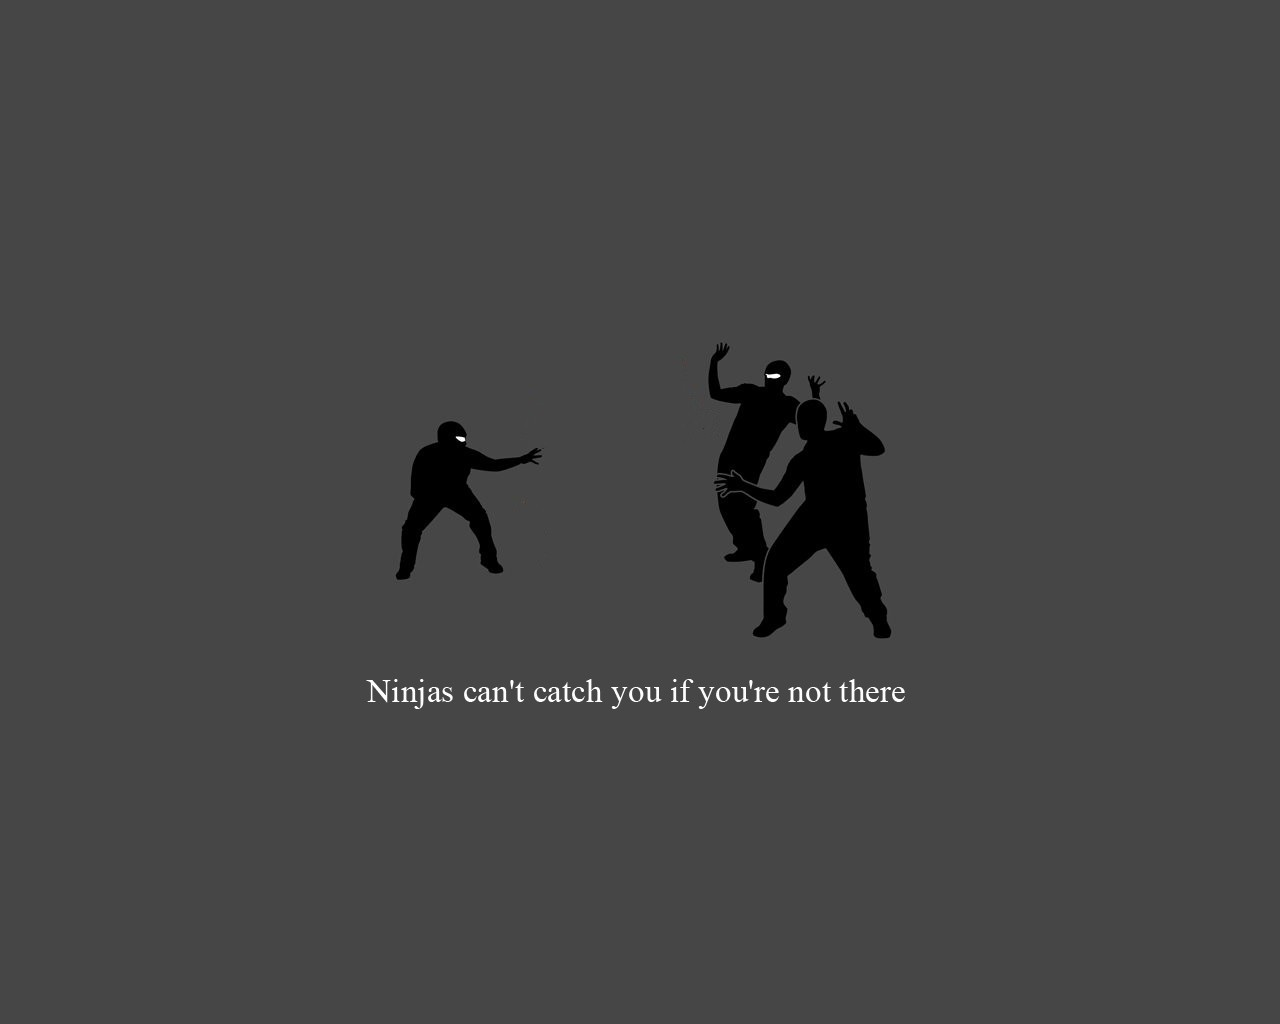 funny ninjas cant catch HD Wallpaper